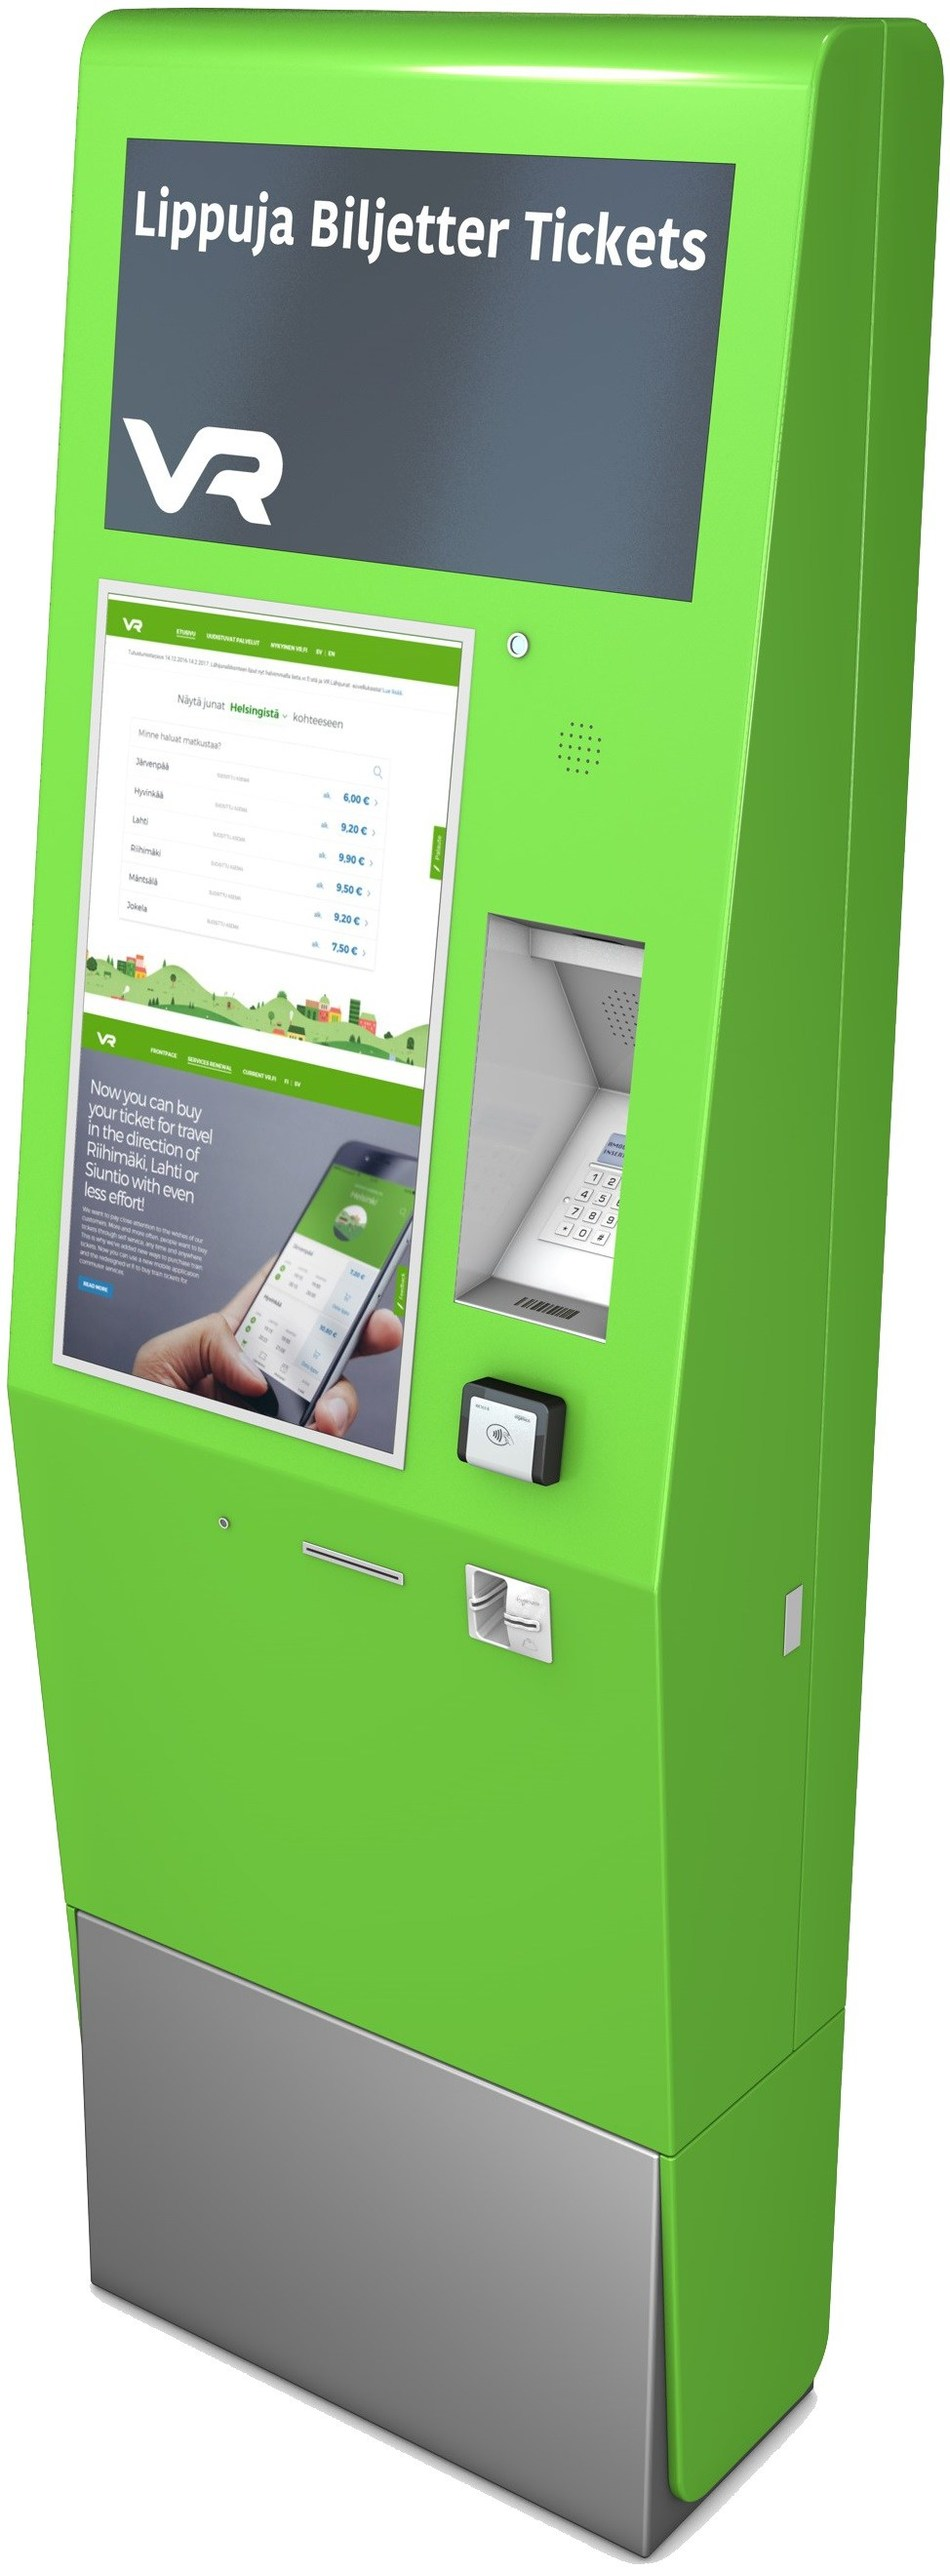 Finland's railway network, VR Group, upgrades its ticketing infrastructure with 130 Conduent Expert 6000 Ticket Vending Machines.